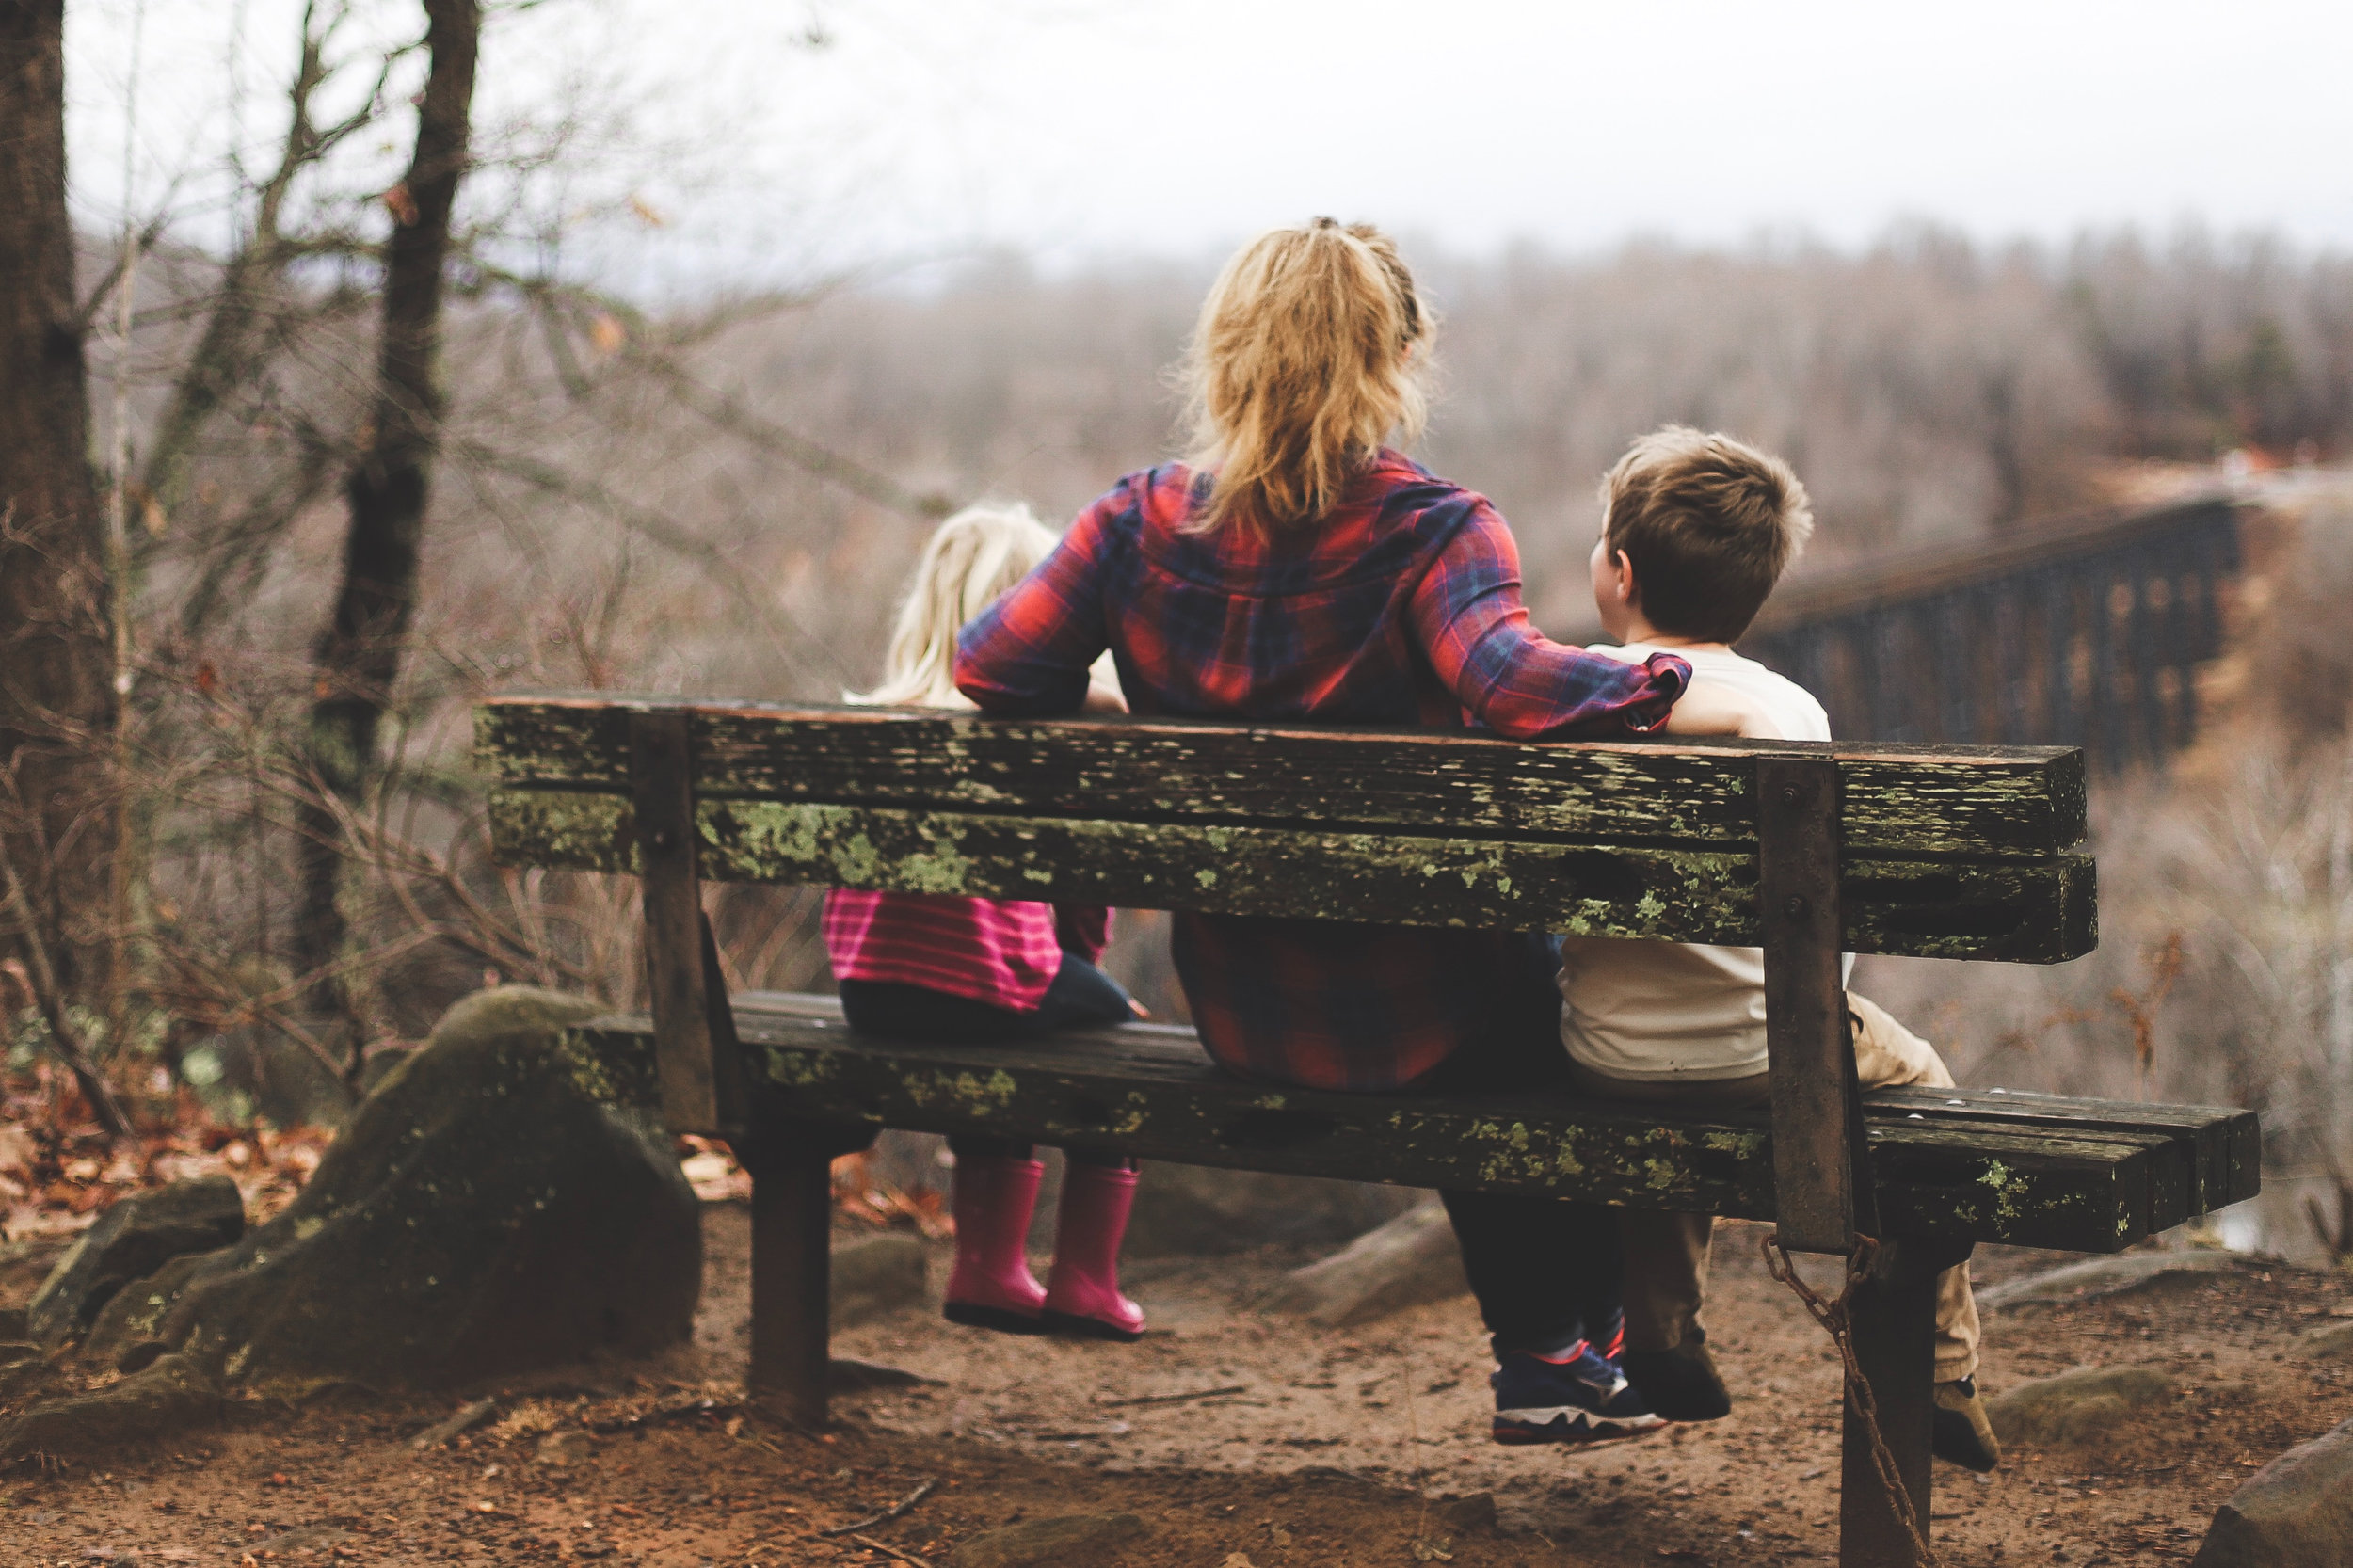 HAVE A CONVERSATION WITH YOUR KIDS - Watch a video with your kids and have a conversation together.